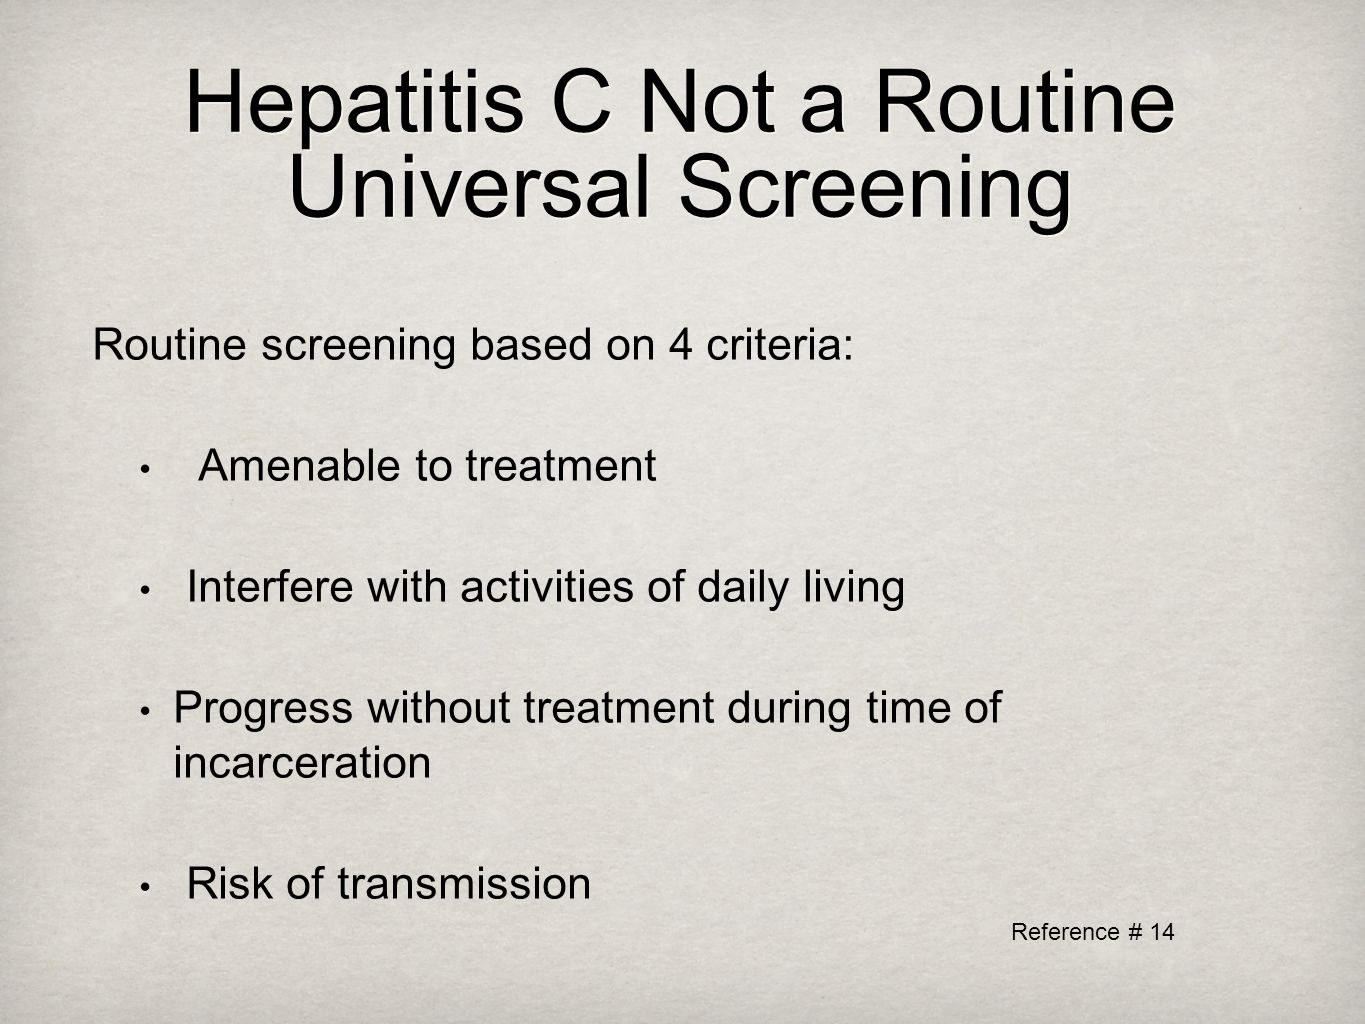 Hepatitis C Not a Routine Universal Screening Routine screening based on 4 criteria: Amenable to treatment Interfere with activities of daily living Progress without treatment during time of incarceration Risk of transmission Reference # 14